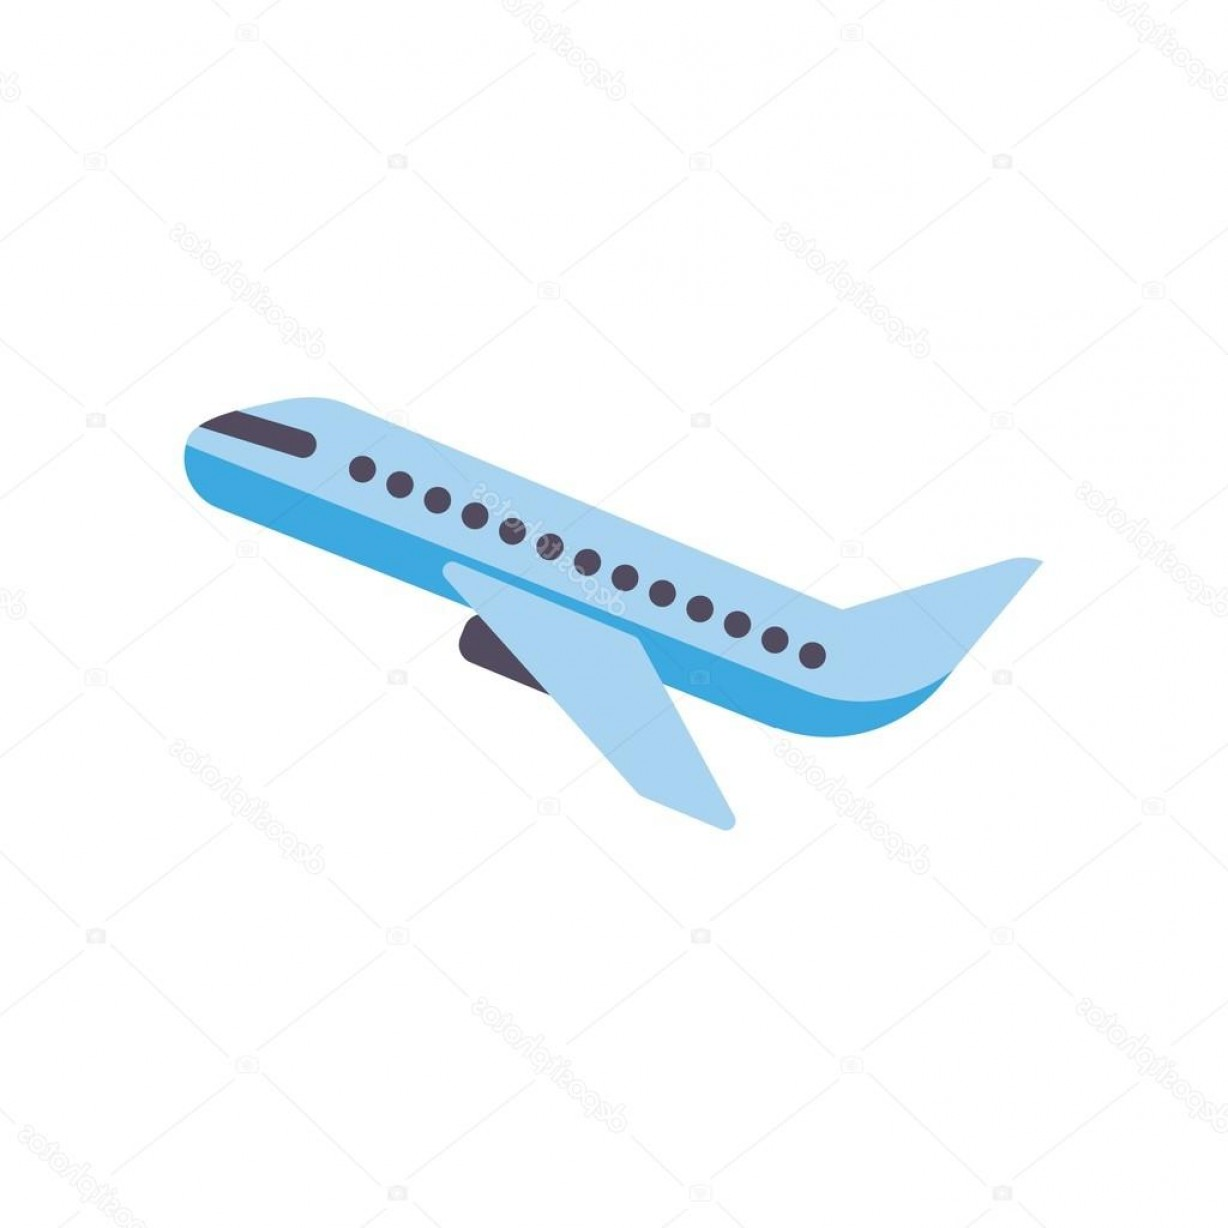 Airplane Travel Vectors: Stock Illustration Design Logo Travel Plane Flight